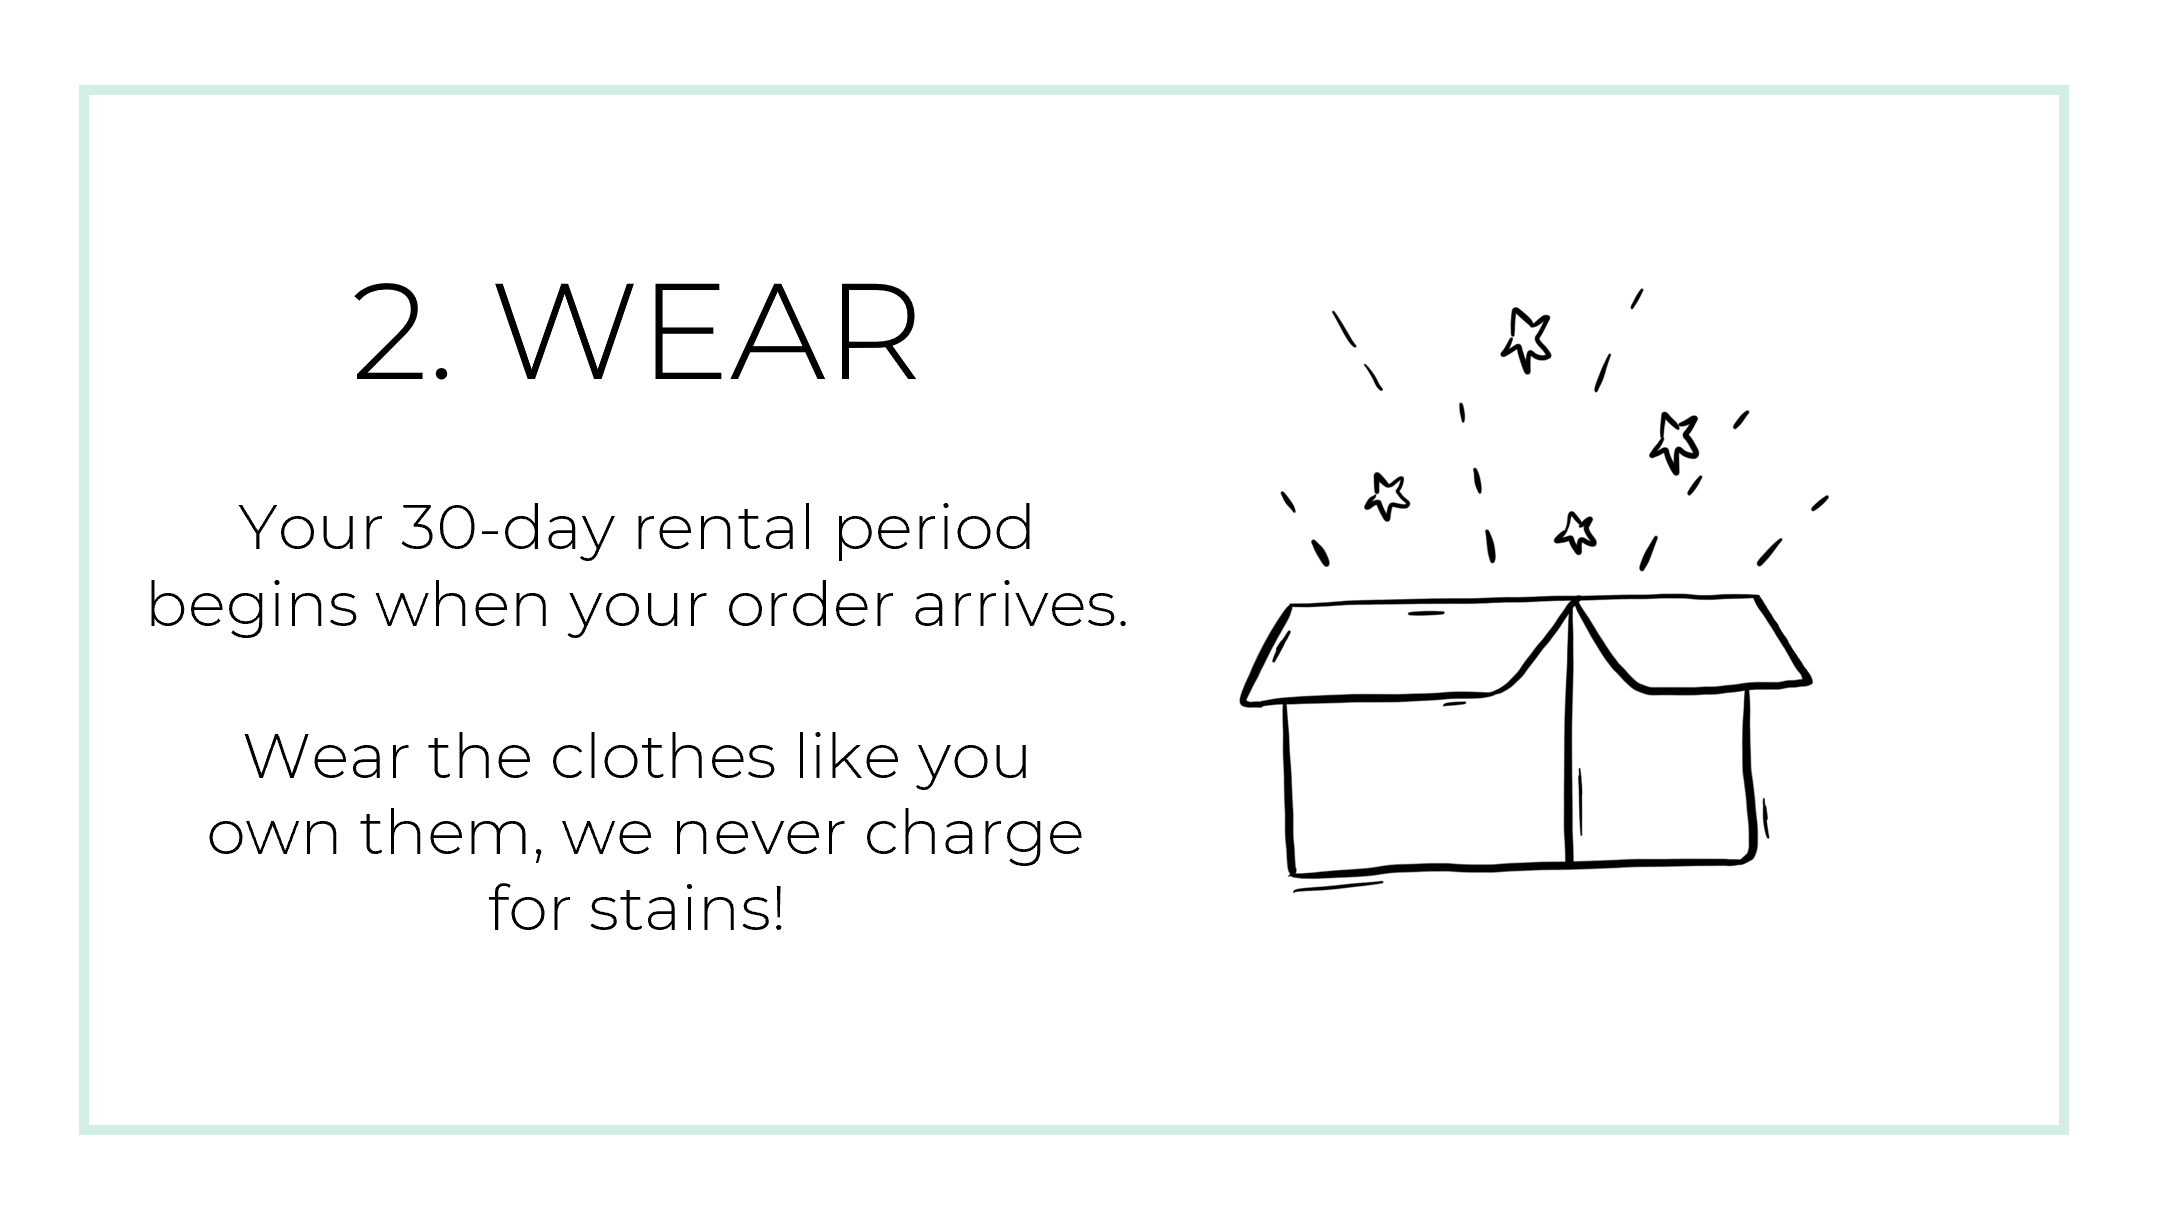 Wear the clothes like you own them, we never charge for stains!